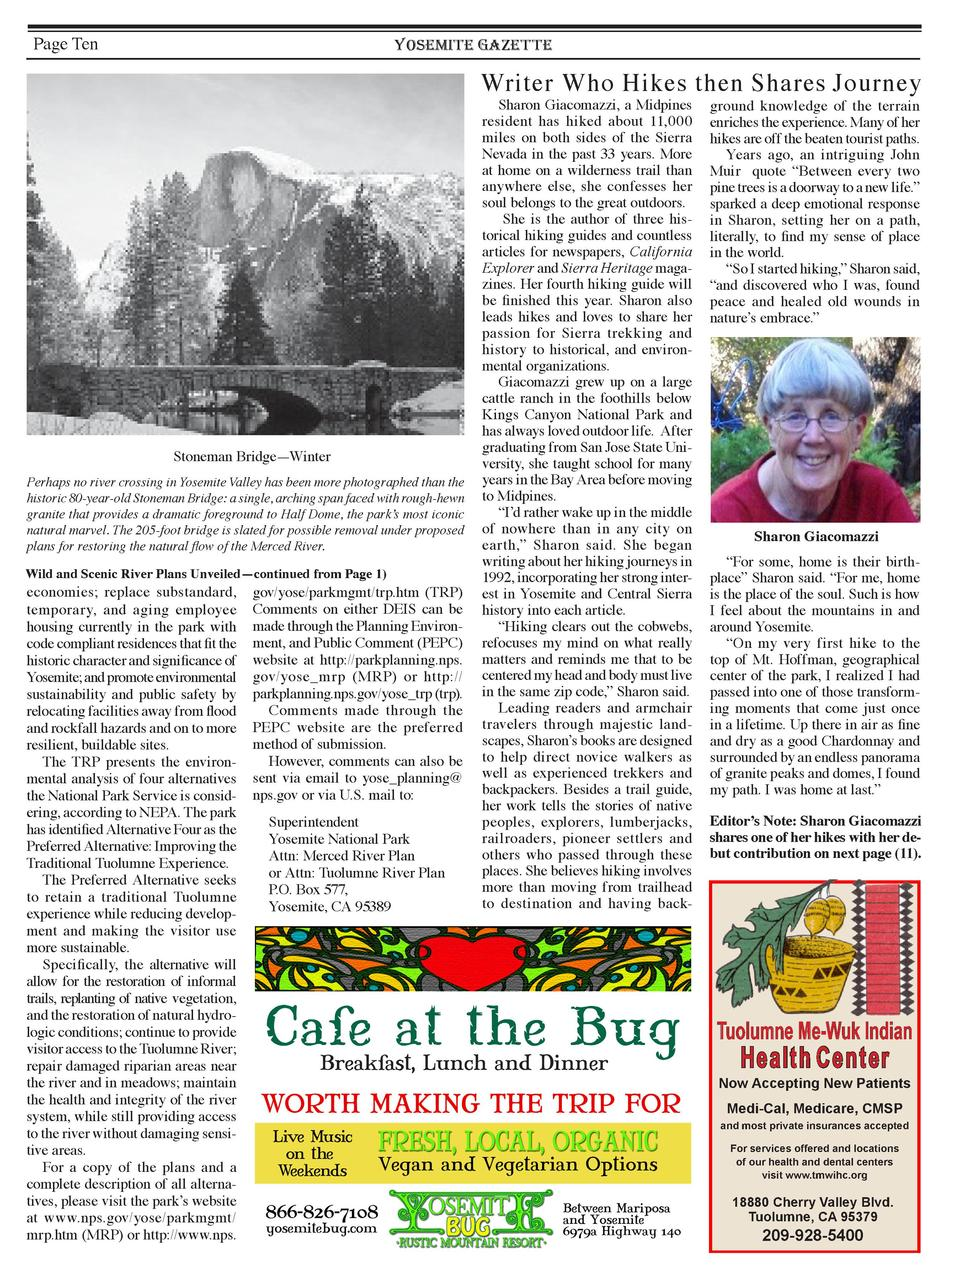 Page Ten  YOSEMITE GAZETTE  Writer Who Hikes then Shares Journey  Stoneman Bridge     Winter Perhaps no river crossing in ...